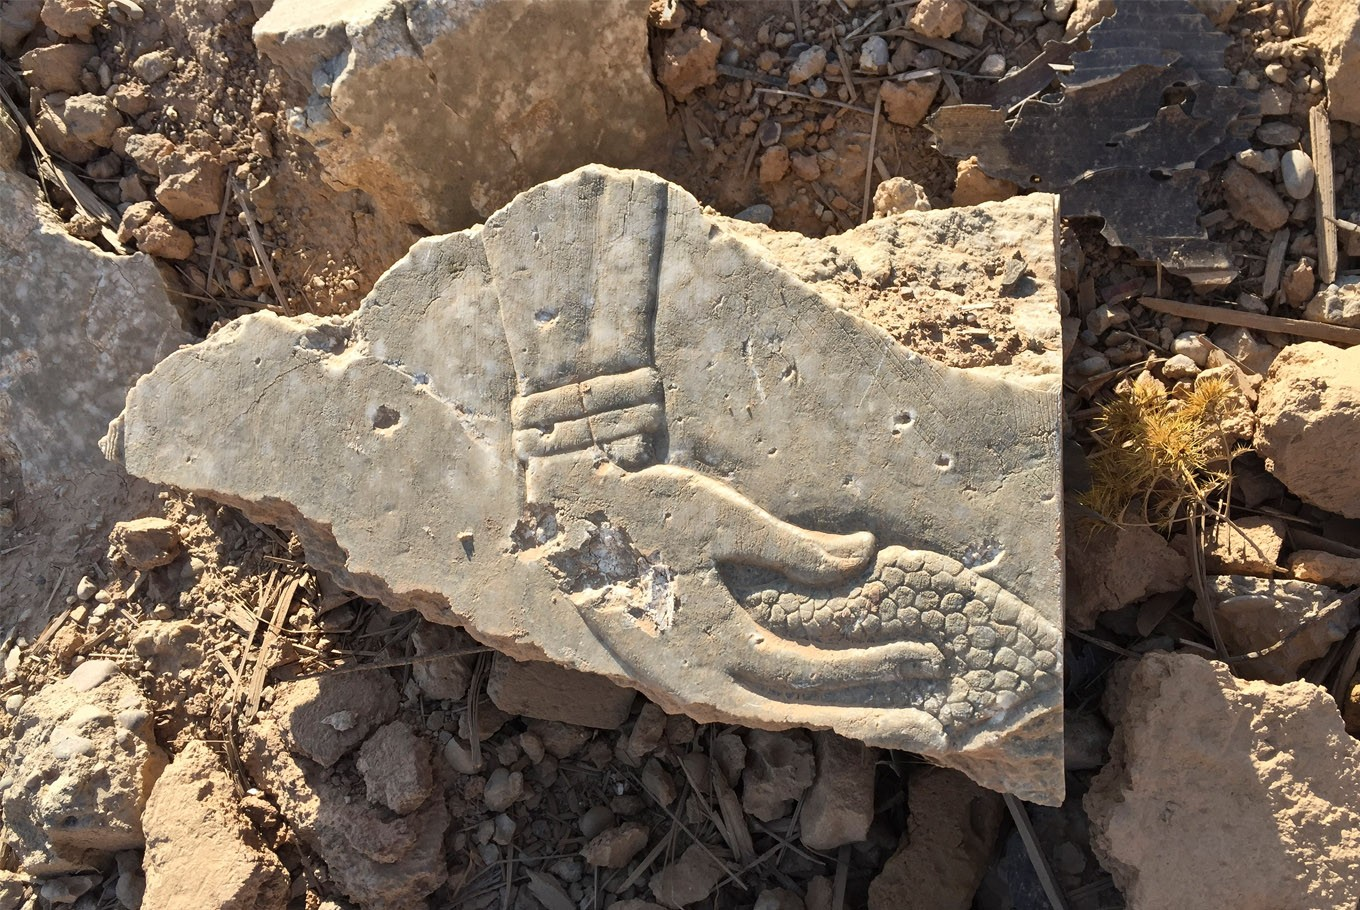 Iraq hopes to reclaim heritage lost to Islamic State group